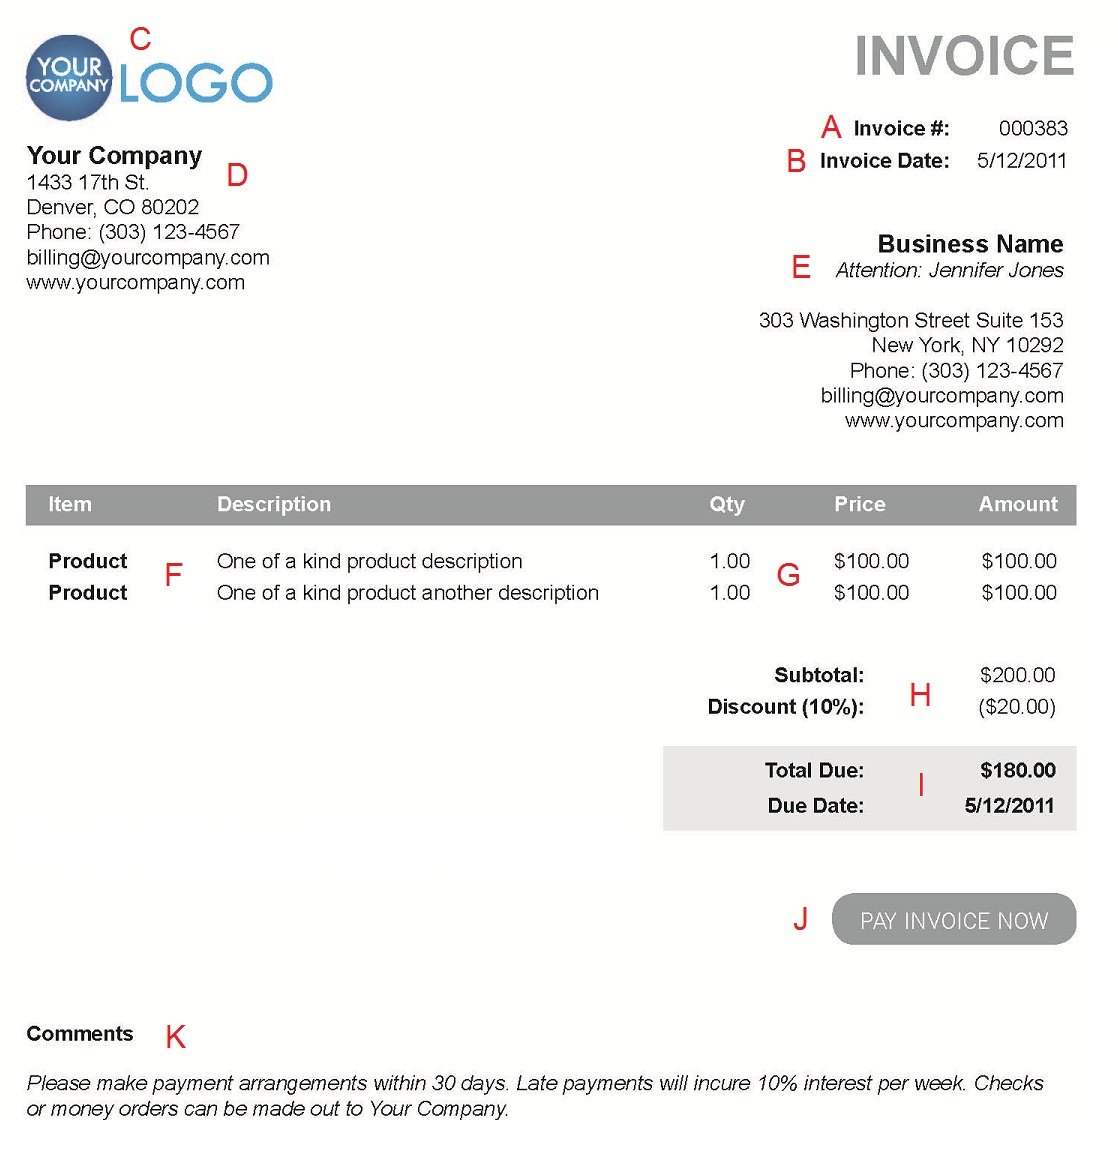 Patriotexpressus  Unique The  Different Sections Of An Electronic Payment Invoice With Remarkable A  With Delightful Custom Business Invoices Also Creating Invoice In Addition Ar Invoice And Open Source Invoicing As Well As Simple Invoicing Additionally Free Invoicing App From Paysimplecom With Patriotexpressus  Remarkable The  Different Sections Of An Electronic Payment Invoice With Delightful A  And Unique Custom Business Invoices Also Creating Invoice In Addition Ar Invoice From Paysimplecom